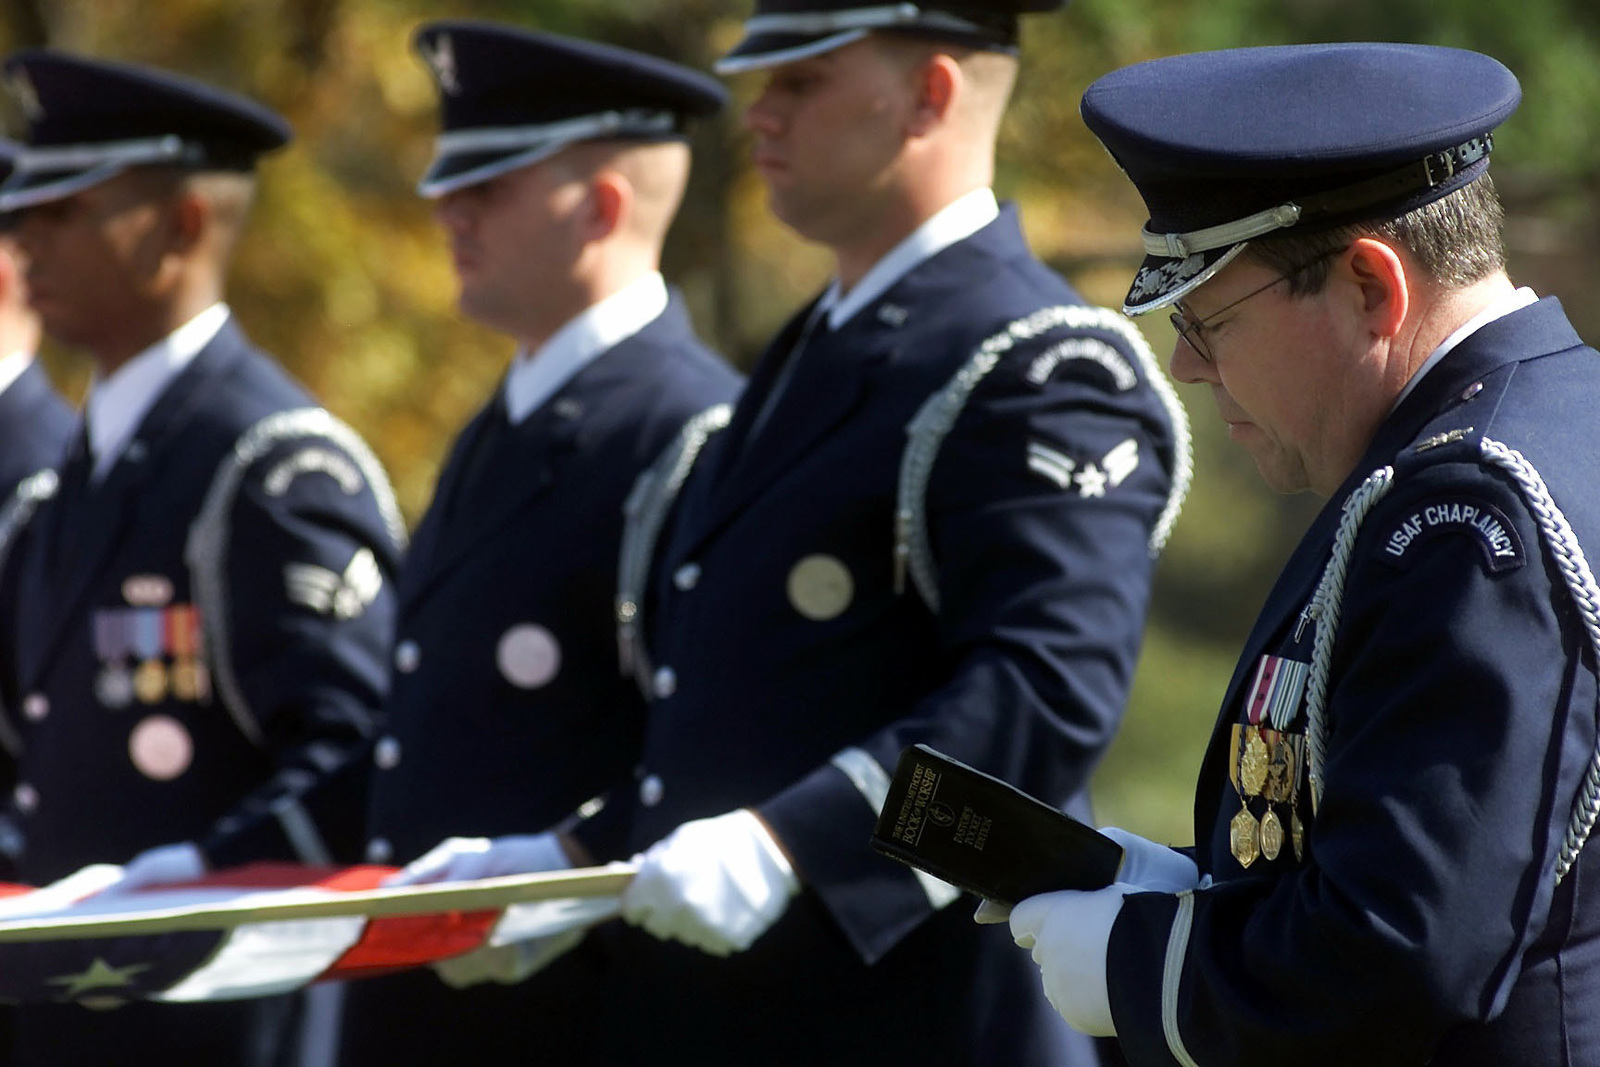 A US Air Force Chaplain reads from a book of worship as other US Air Force members hold the American flag during a full honor funeral for US Air Force Second Lieutenant Richard Vandegeer at Arlington National Cemetery on October 27, 2000